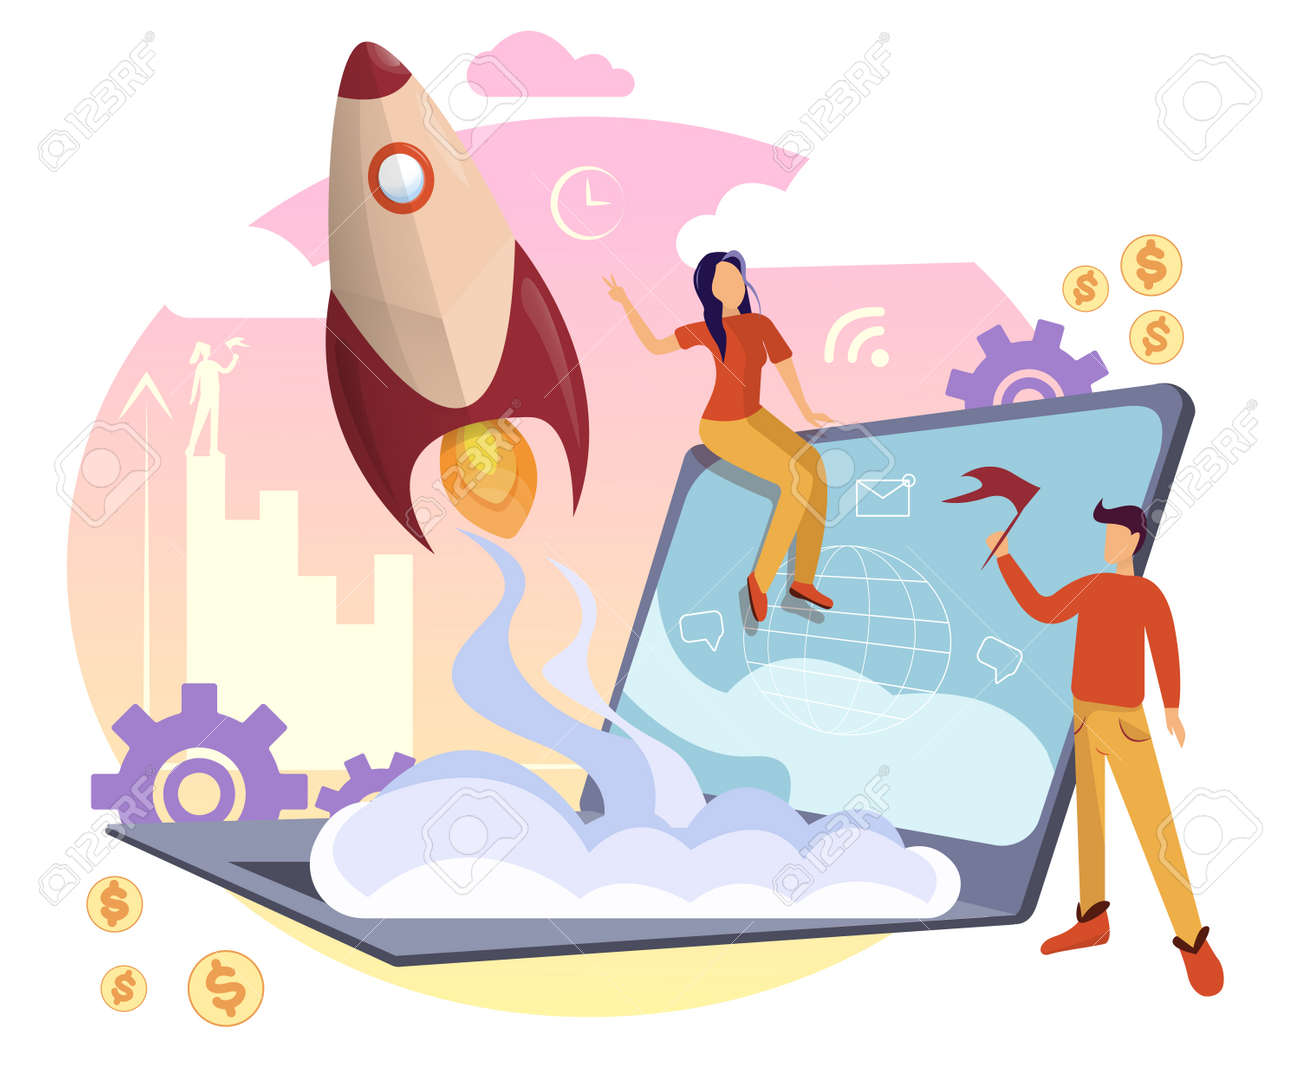 Successful startup concept with people working. Businessman launching a huge light bulb, rocket, launching a business project, web template. Vector illustration - 162232369